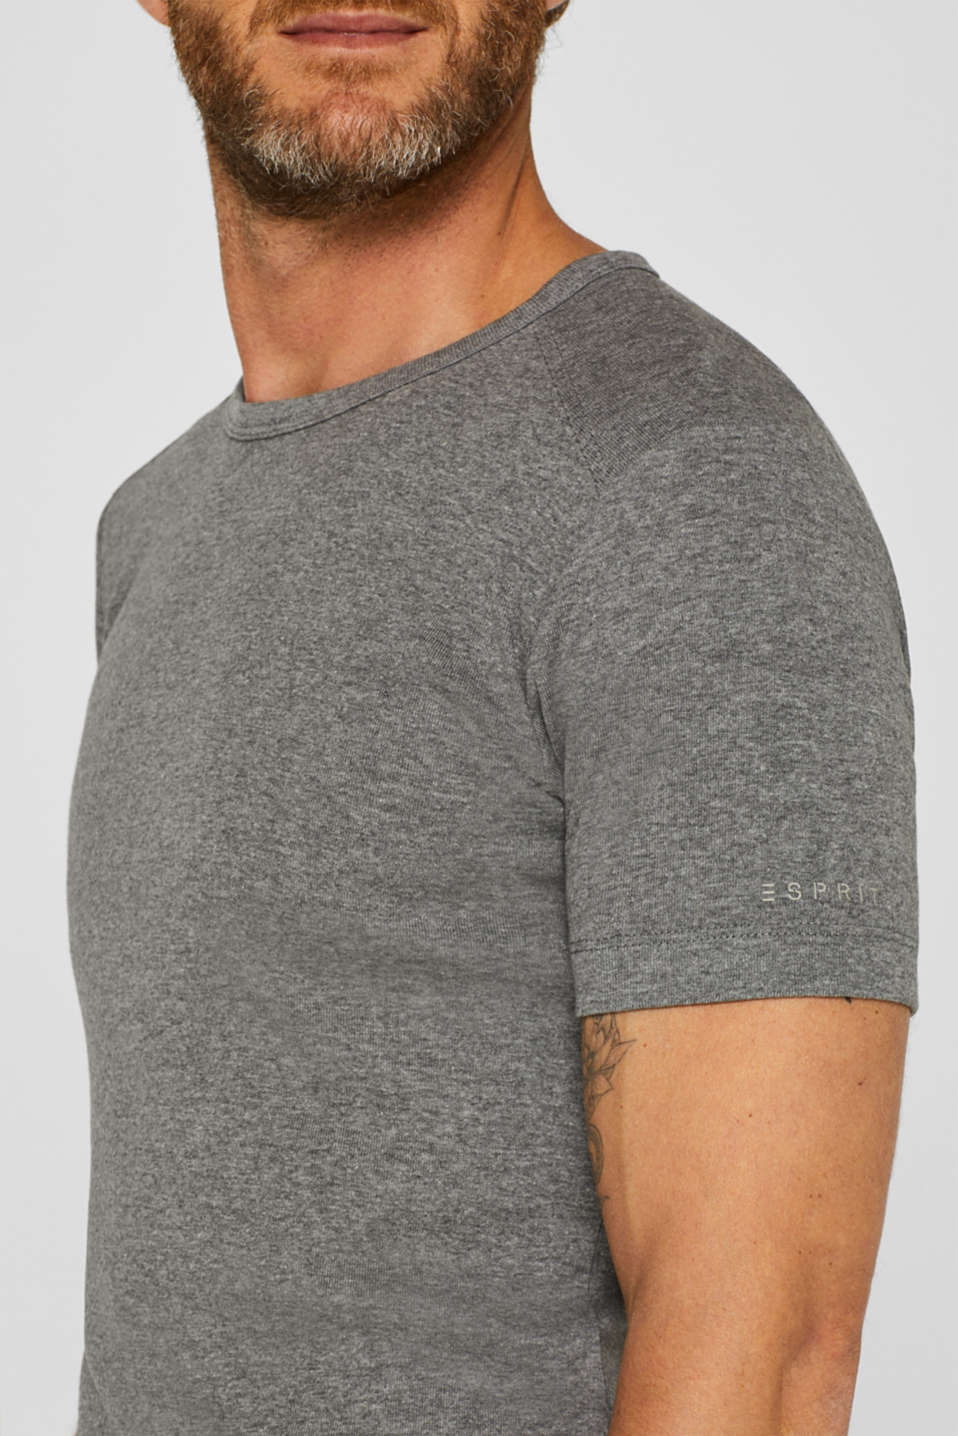 Basic jersey T-shirt, with organic cotton